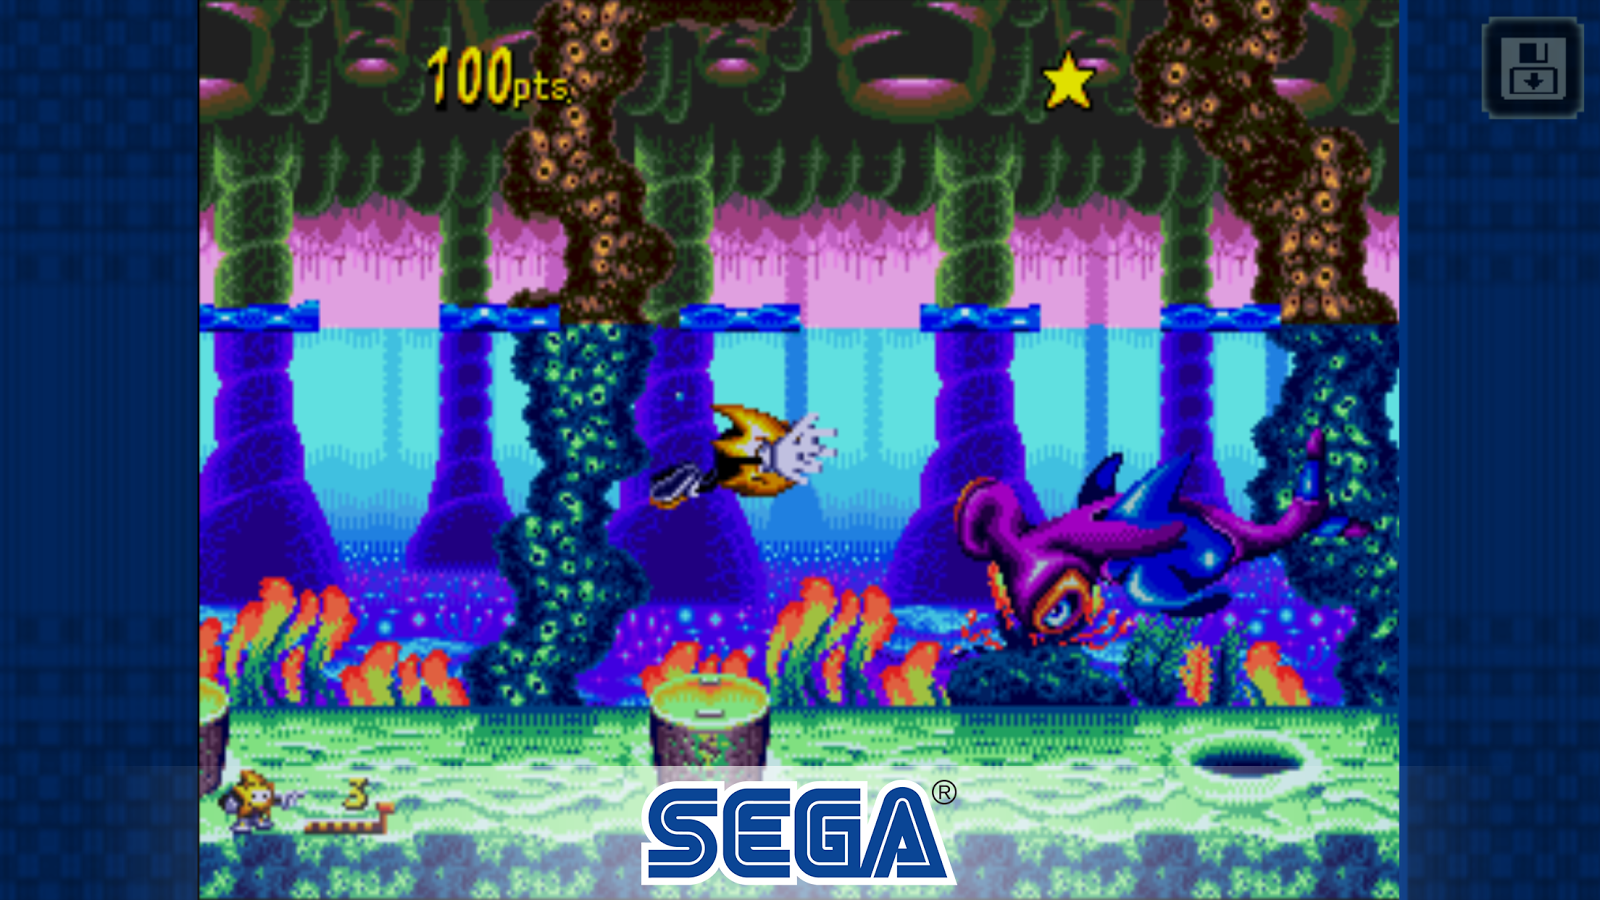 Sega's 'Ristar' is the latest title added to the SEGA